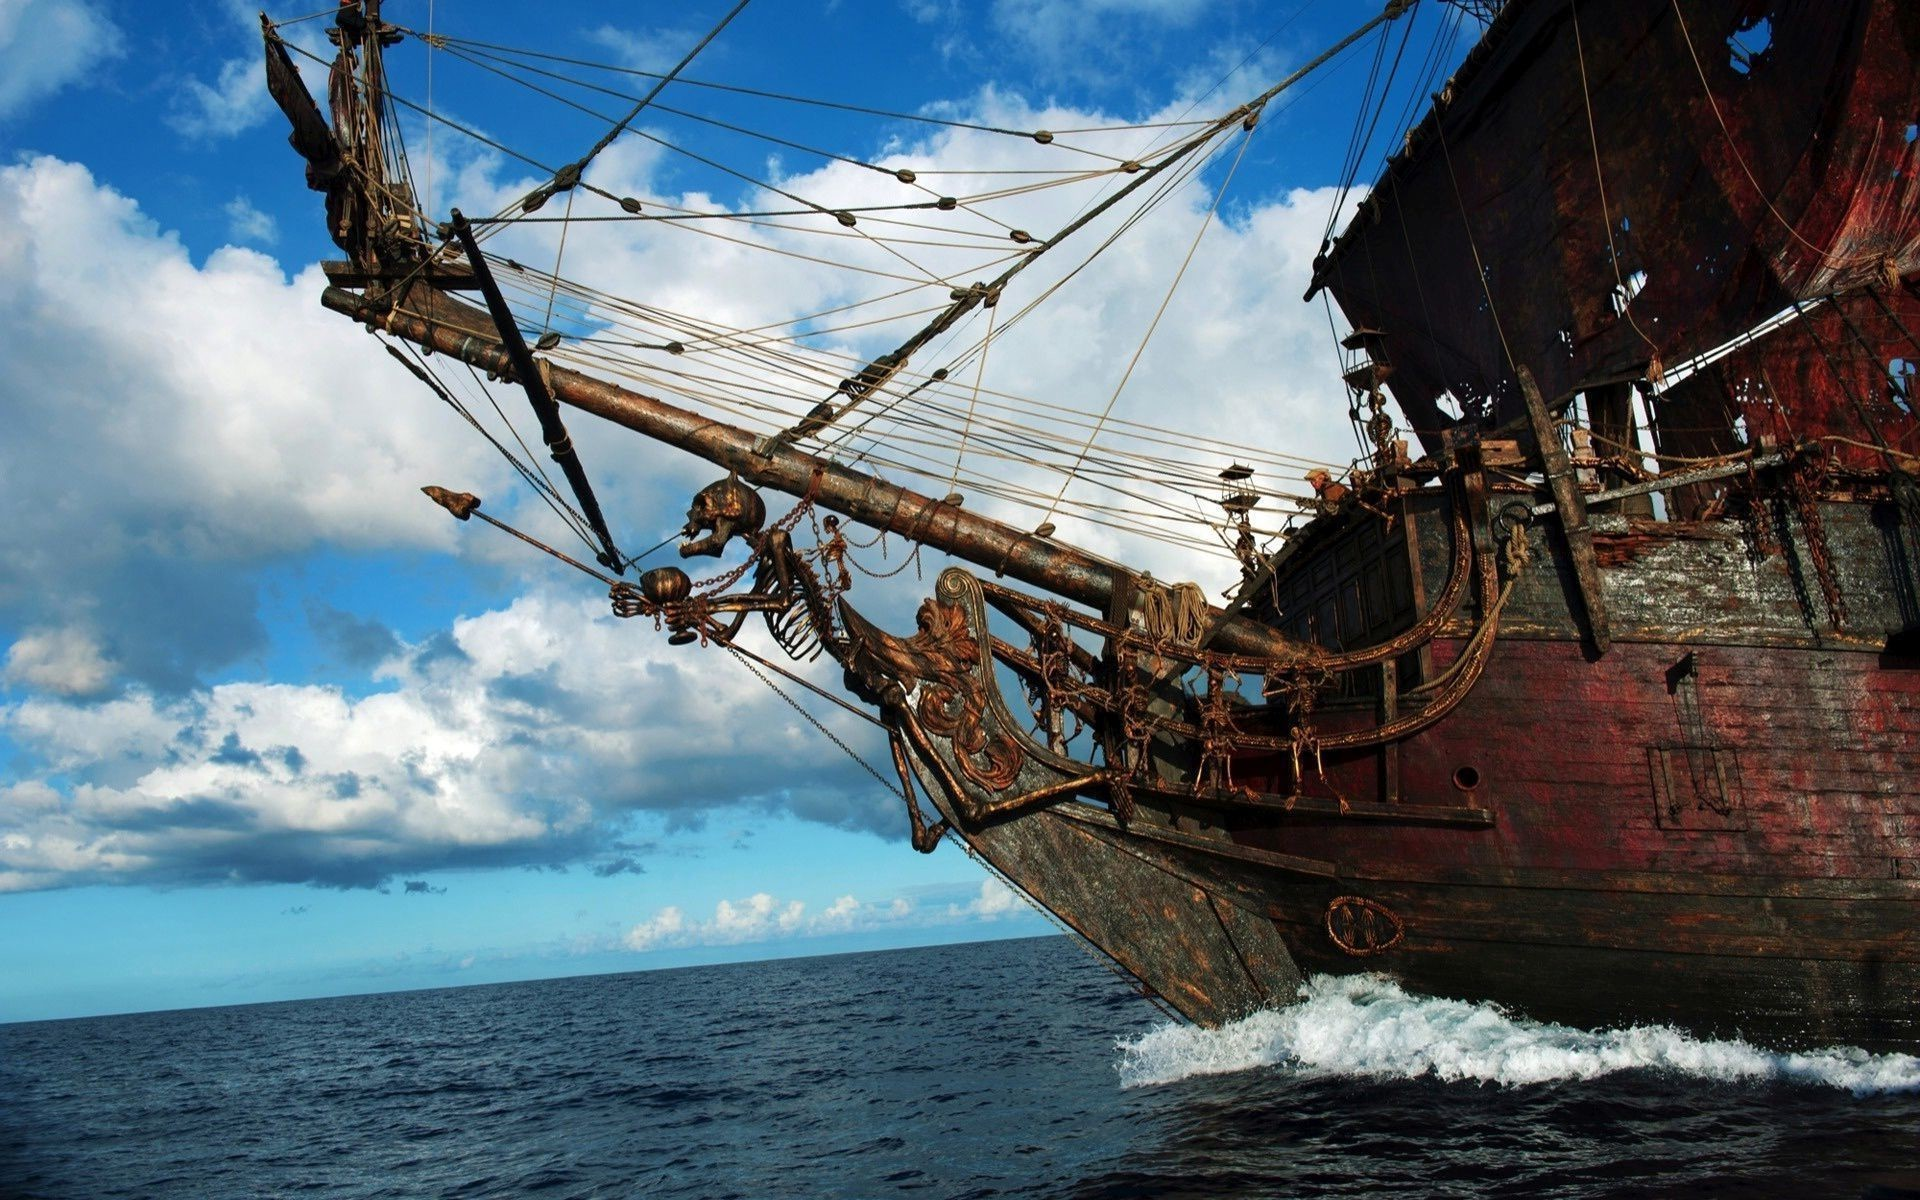 Pirates Of The Caribbean 5 Wallpapers Ship: Pirate Ship Wallpaper (82+ Images